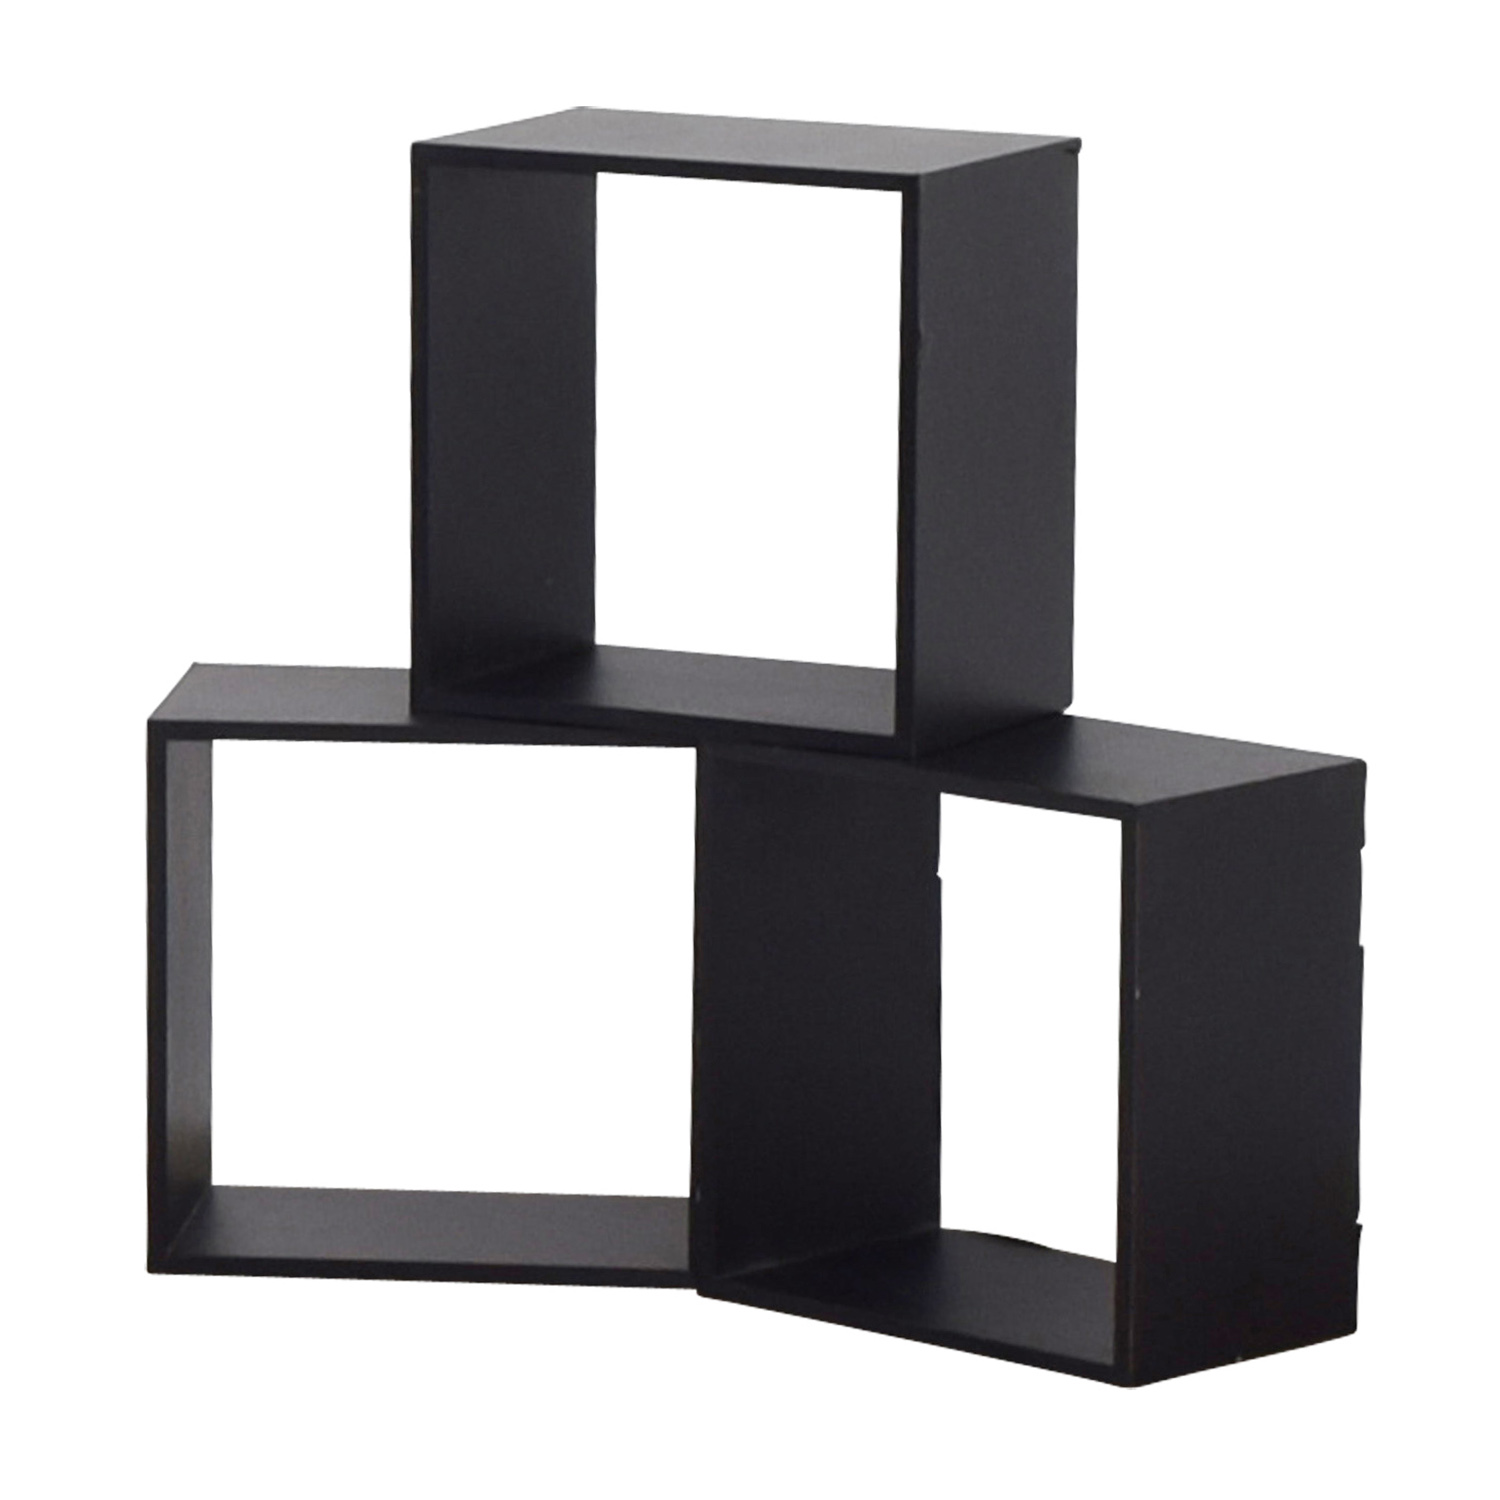 Black Decorative Wall Box Shelves nj